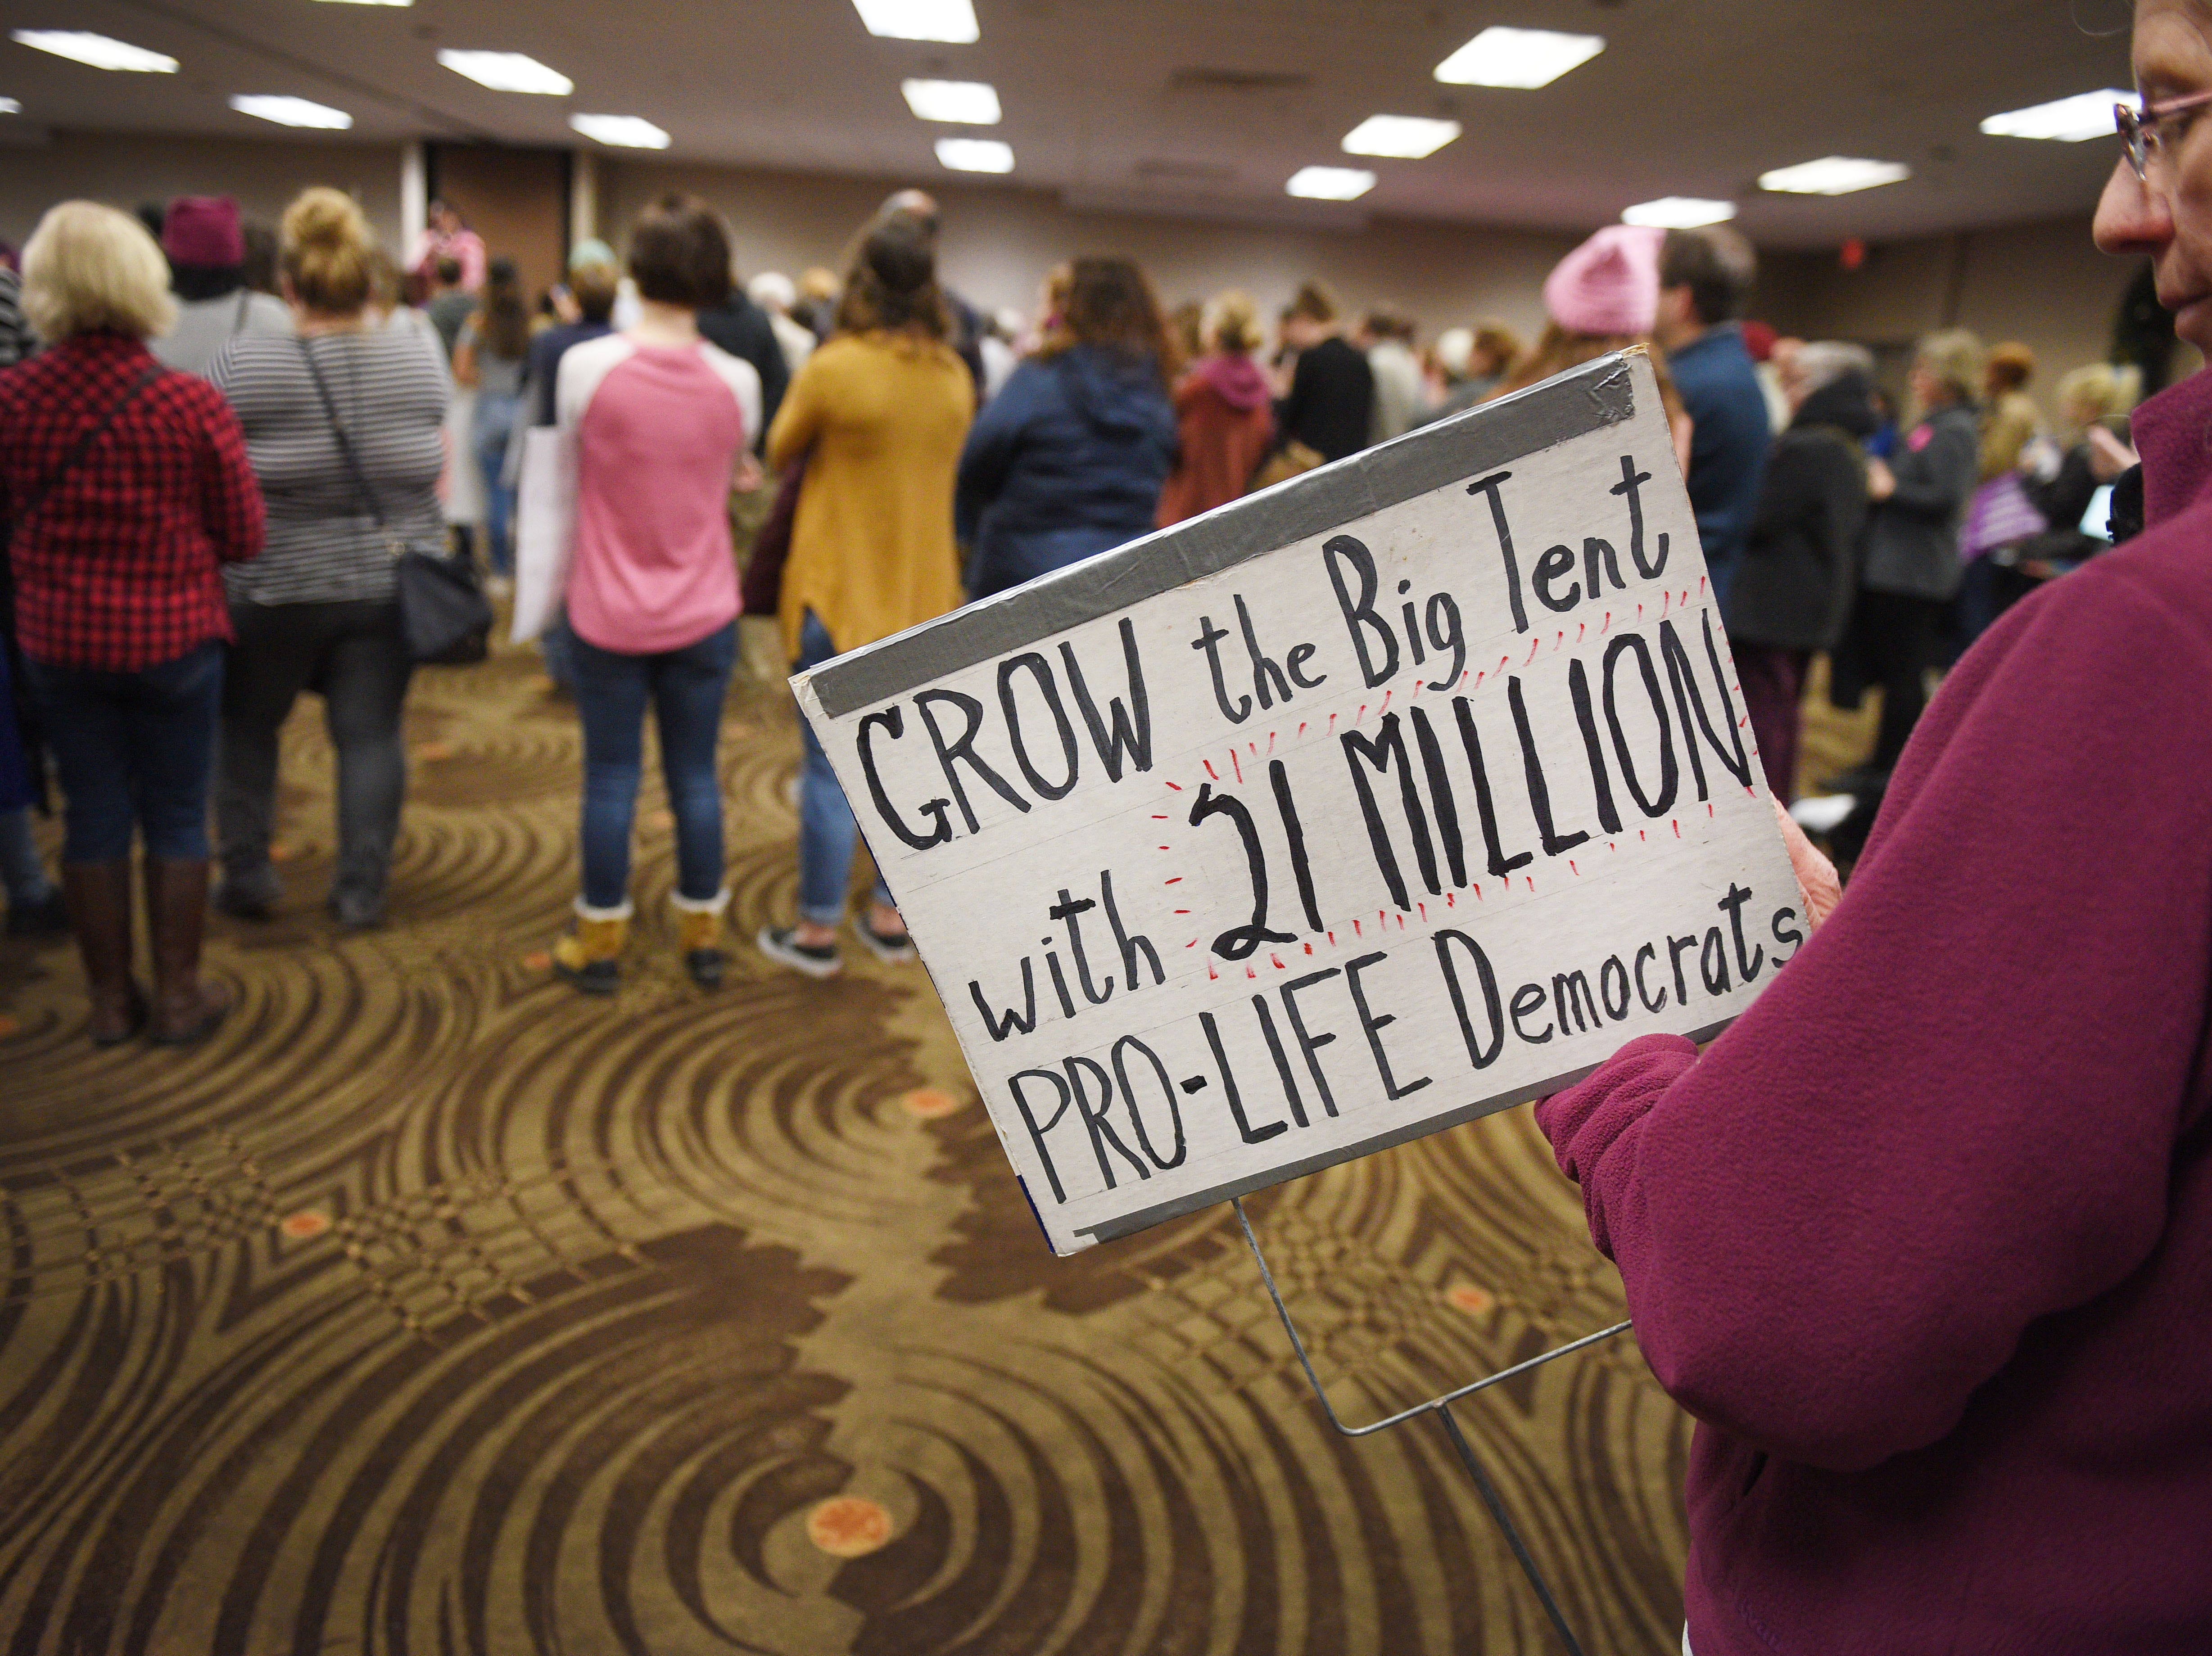 """A woman holds a sign that reads, """"grow the big tent with 21 million pro-life democrats"""" during the Women's March Saturday, Jan. 19, at the Downtown Sioux Falls Holiday Inn-City Centre in Sioux Falls."""